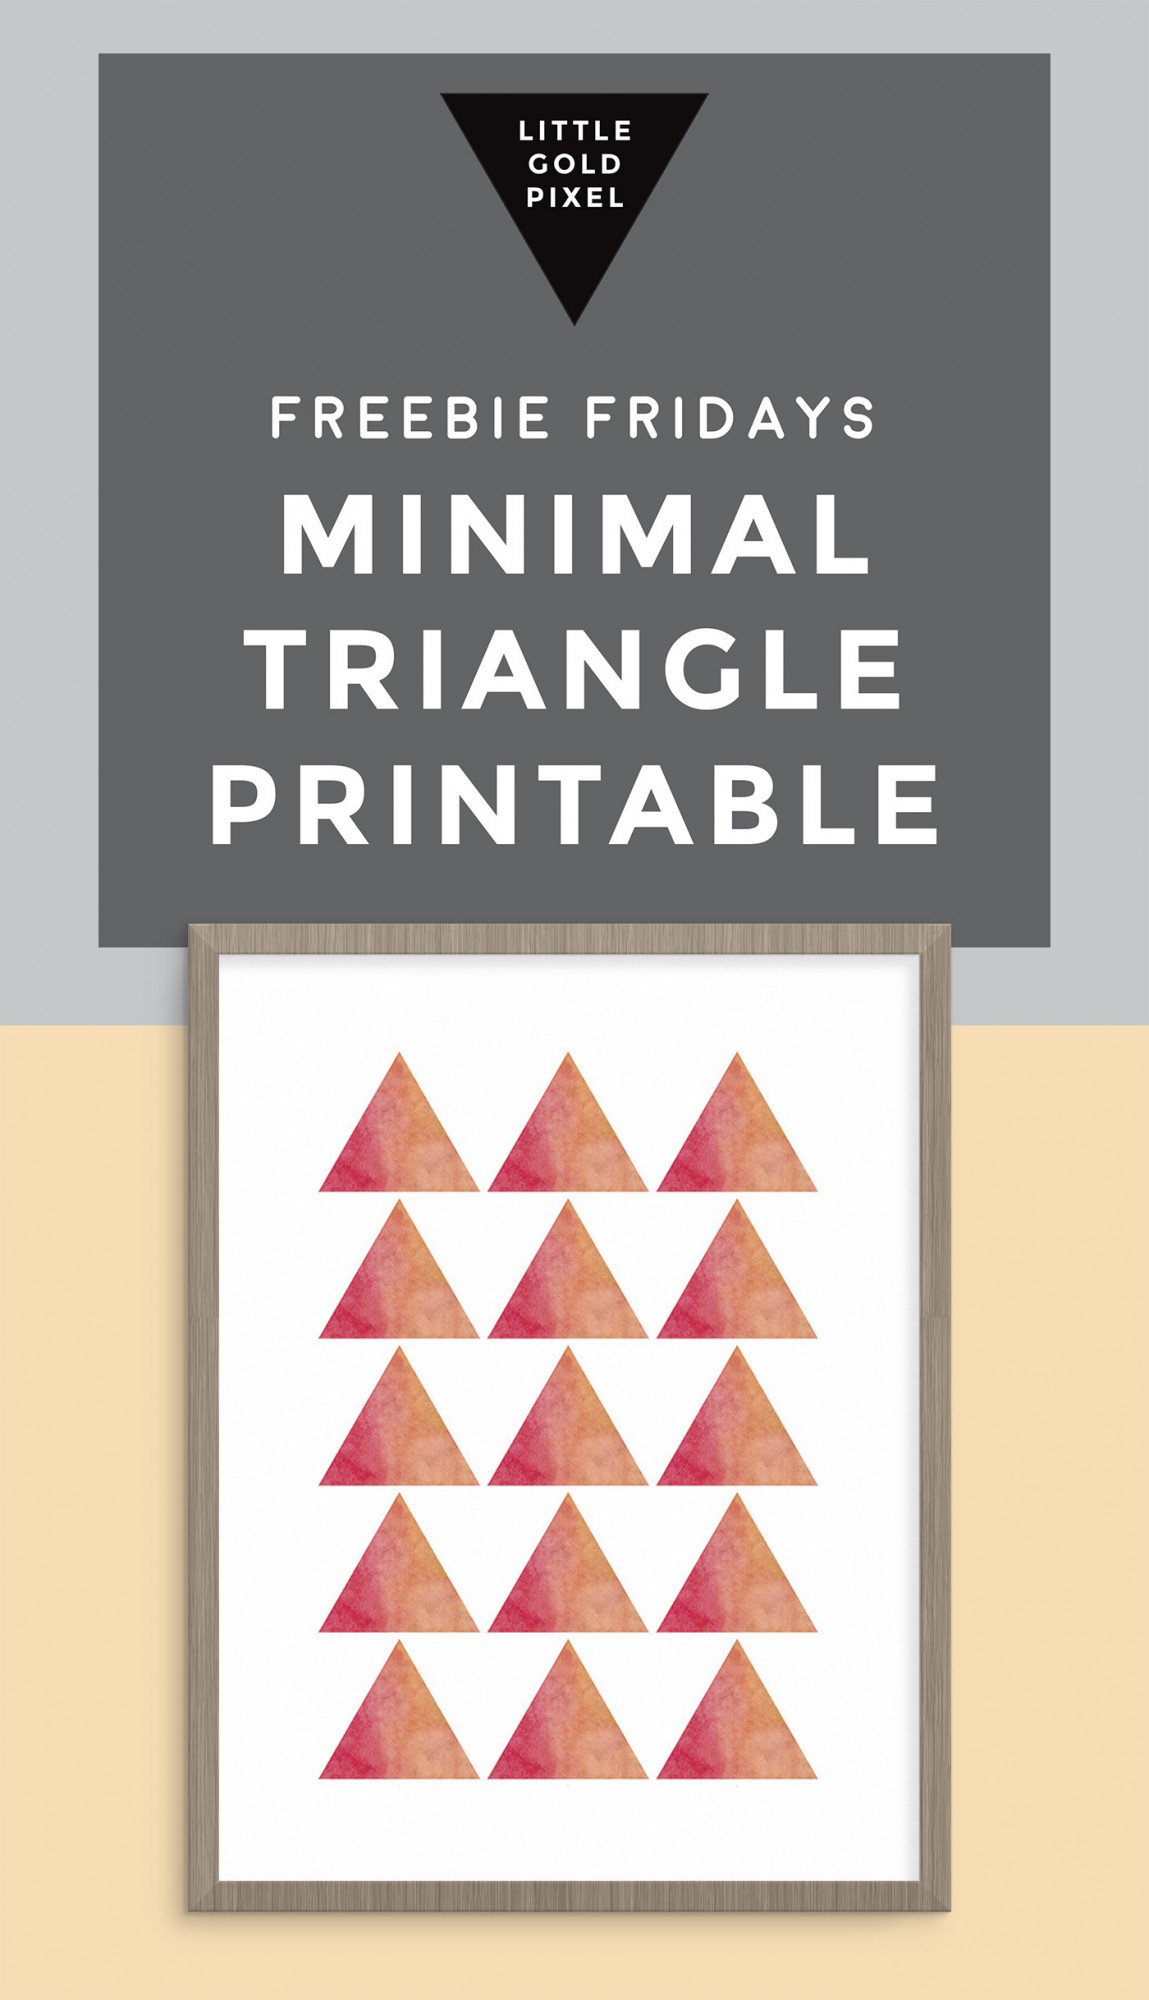 Minimal Triangle Pattern Art Printable / Freebie Fridays • Little Gold Pixel